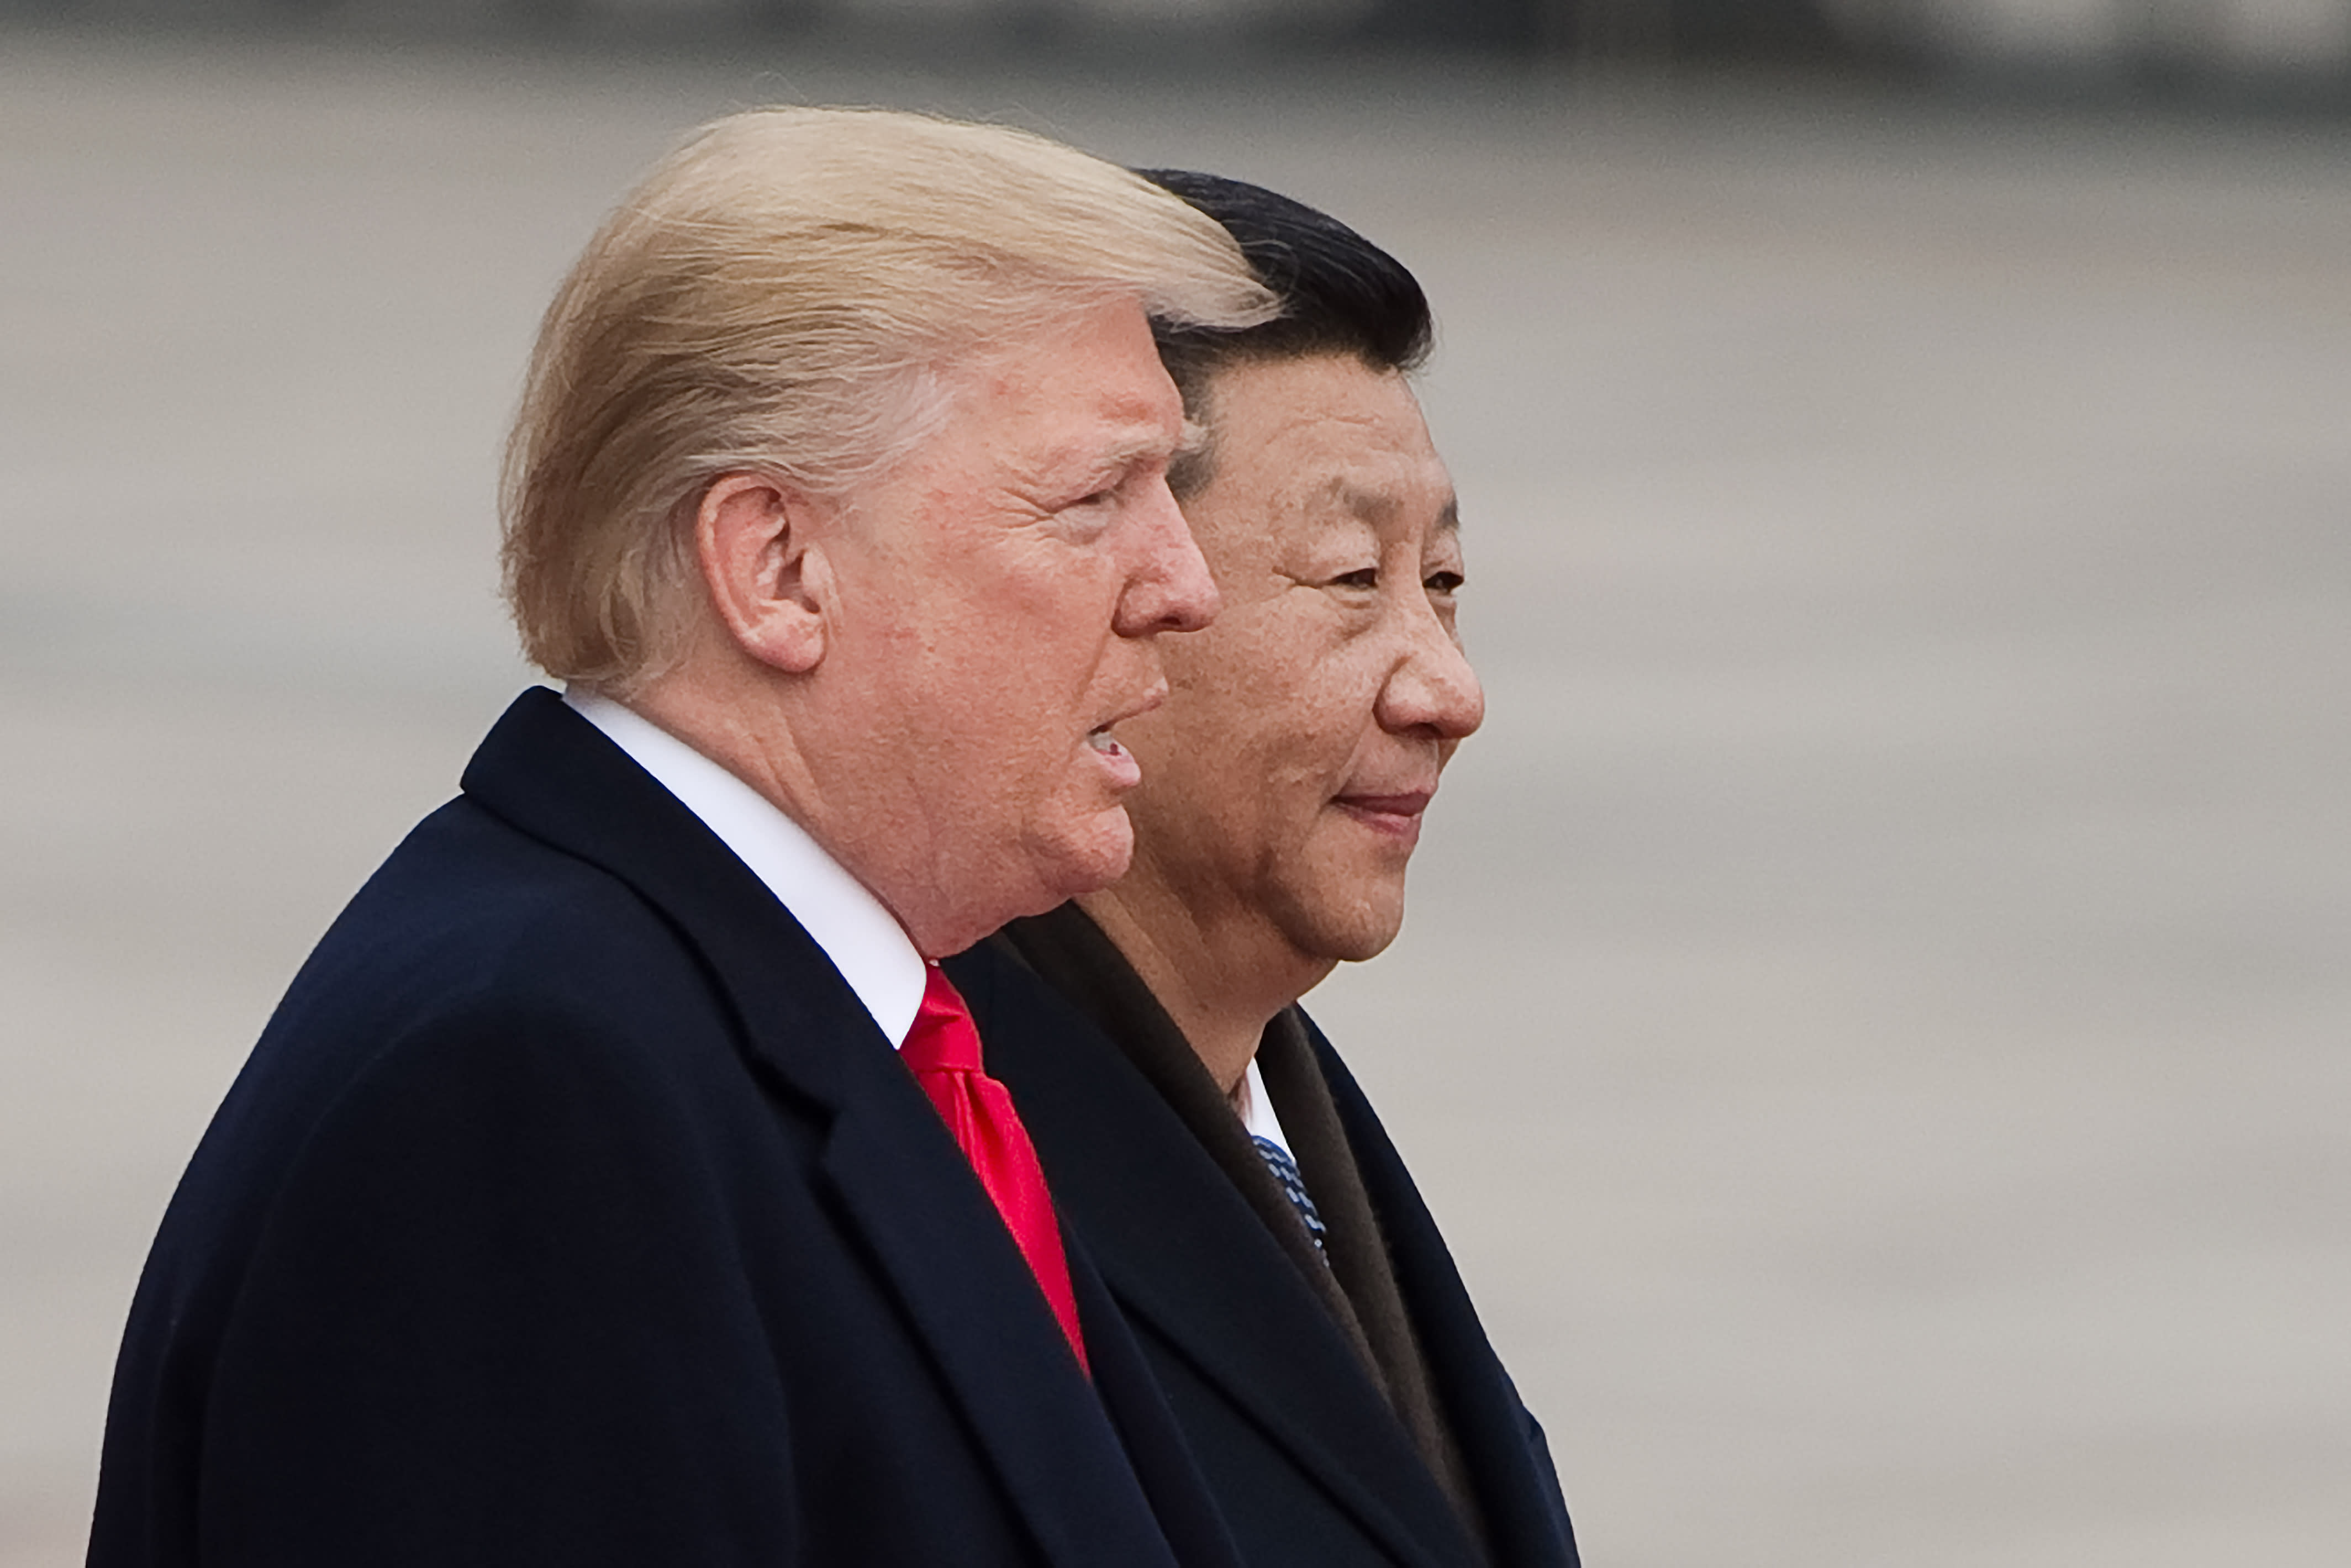 Trump-Xi meeting at the G-20 could impact the Fed's next move, economist says thumbnail